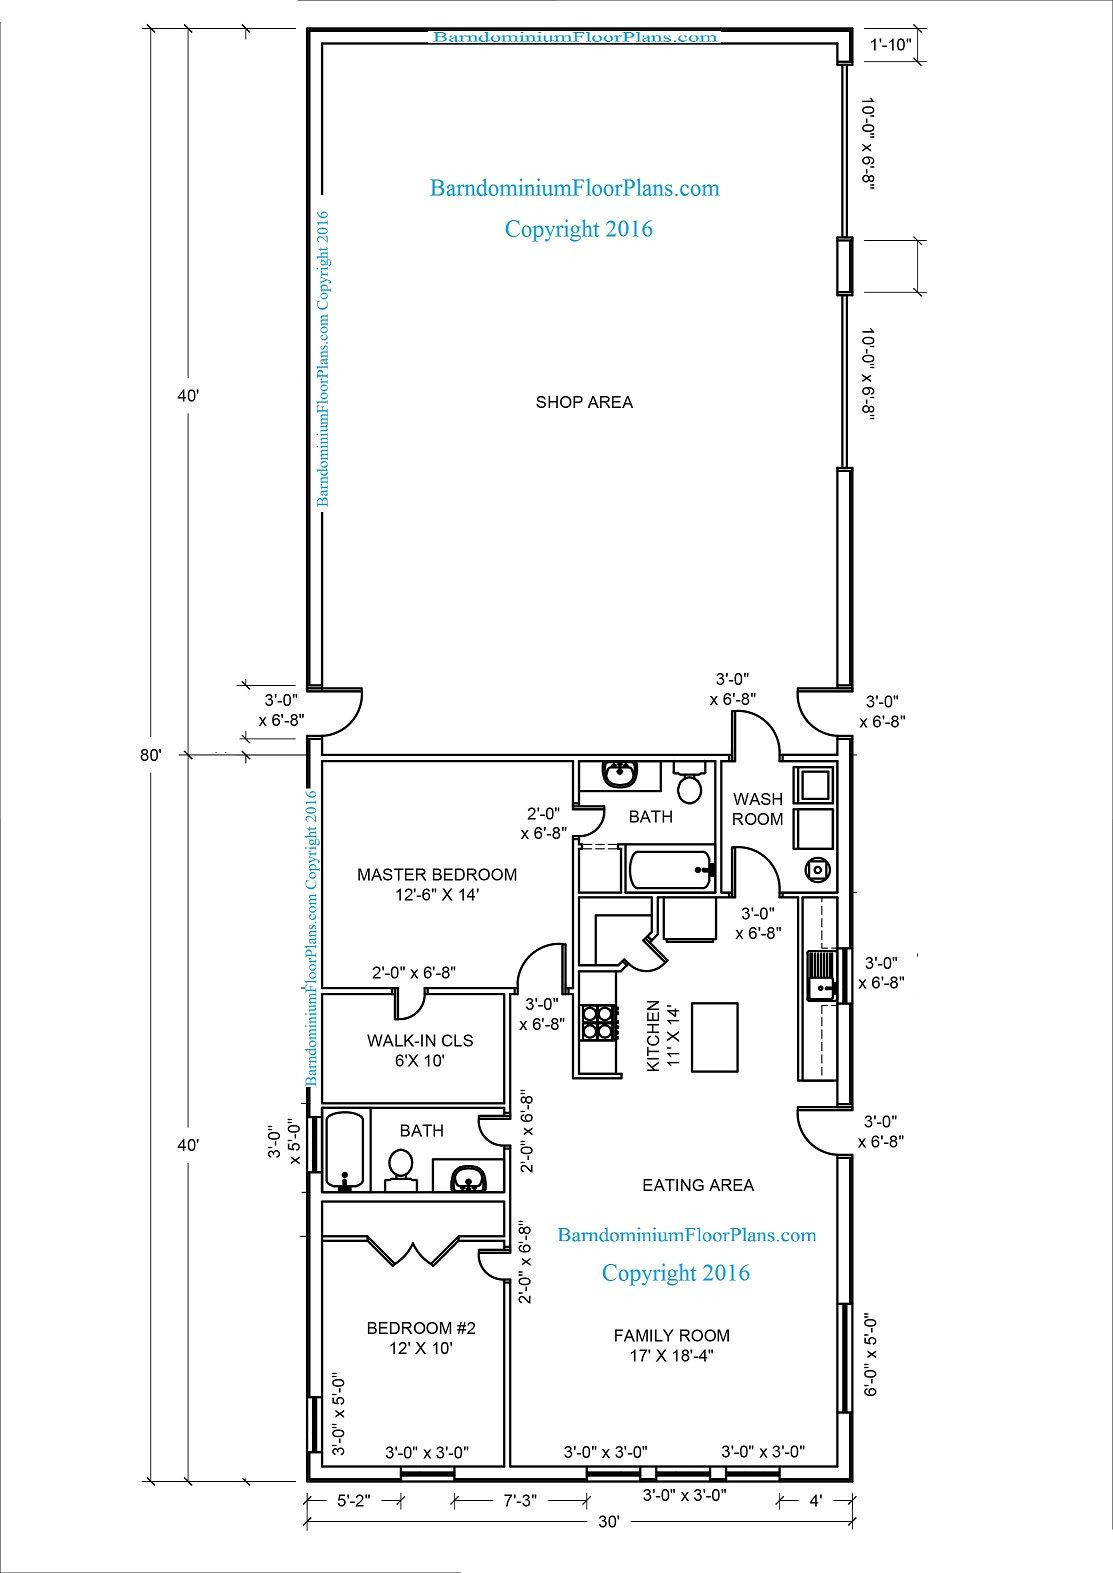 House Plans and Prices to Build Inspirational Beast Metal Building Barndominium Floor Plans and Design